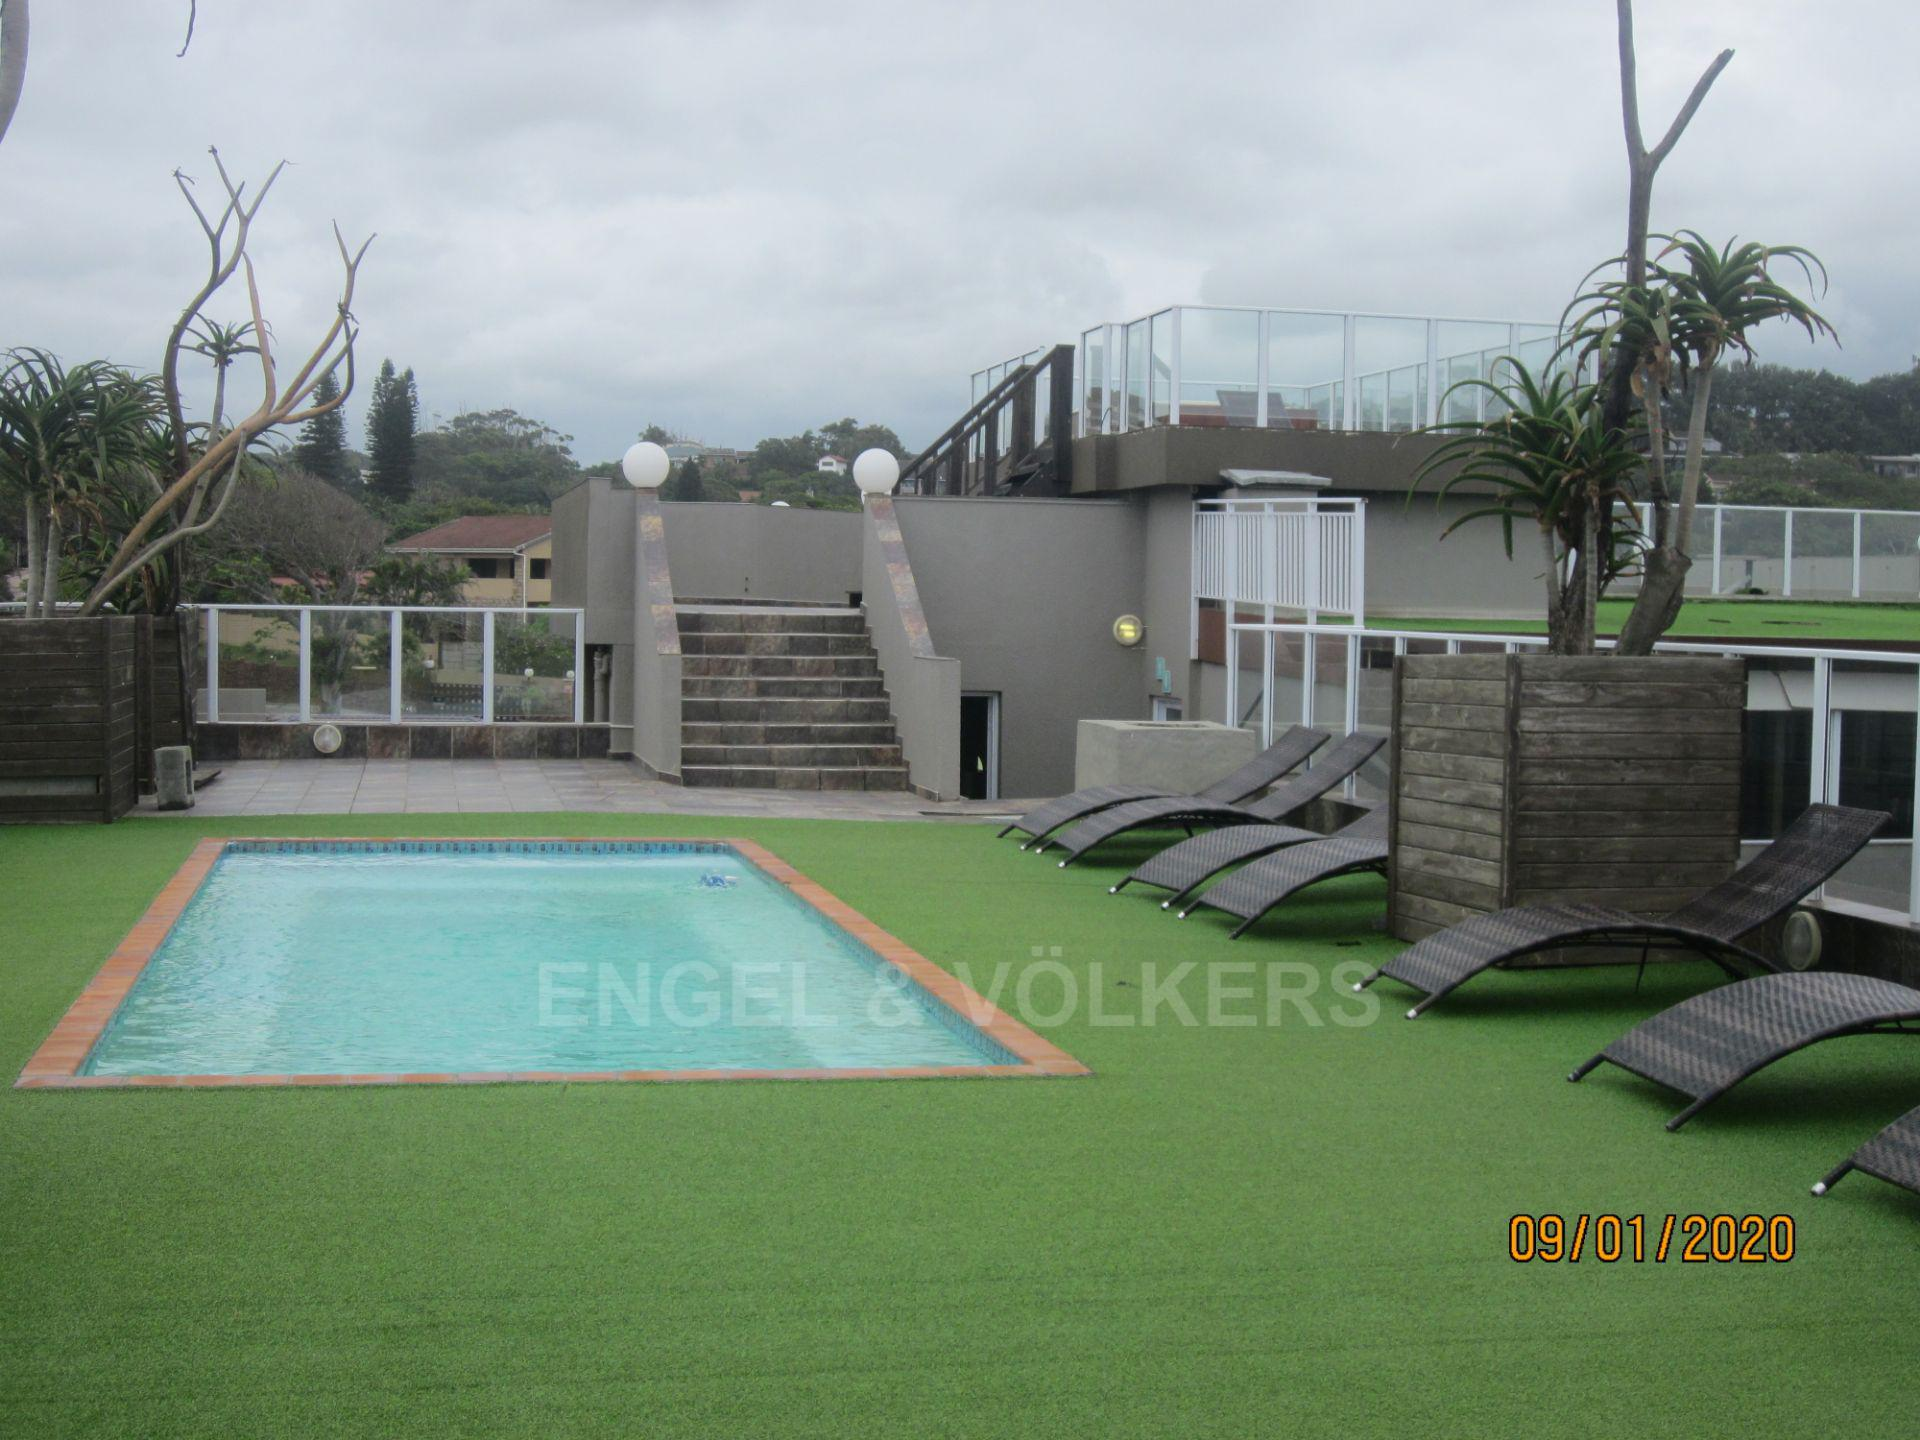 Apartment in Margate - 021 Pool and steps to jacuzzi.JPG